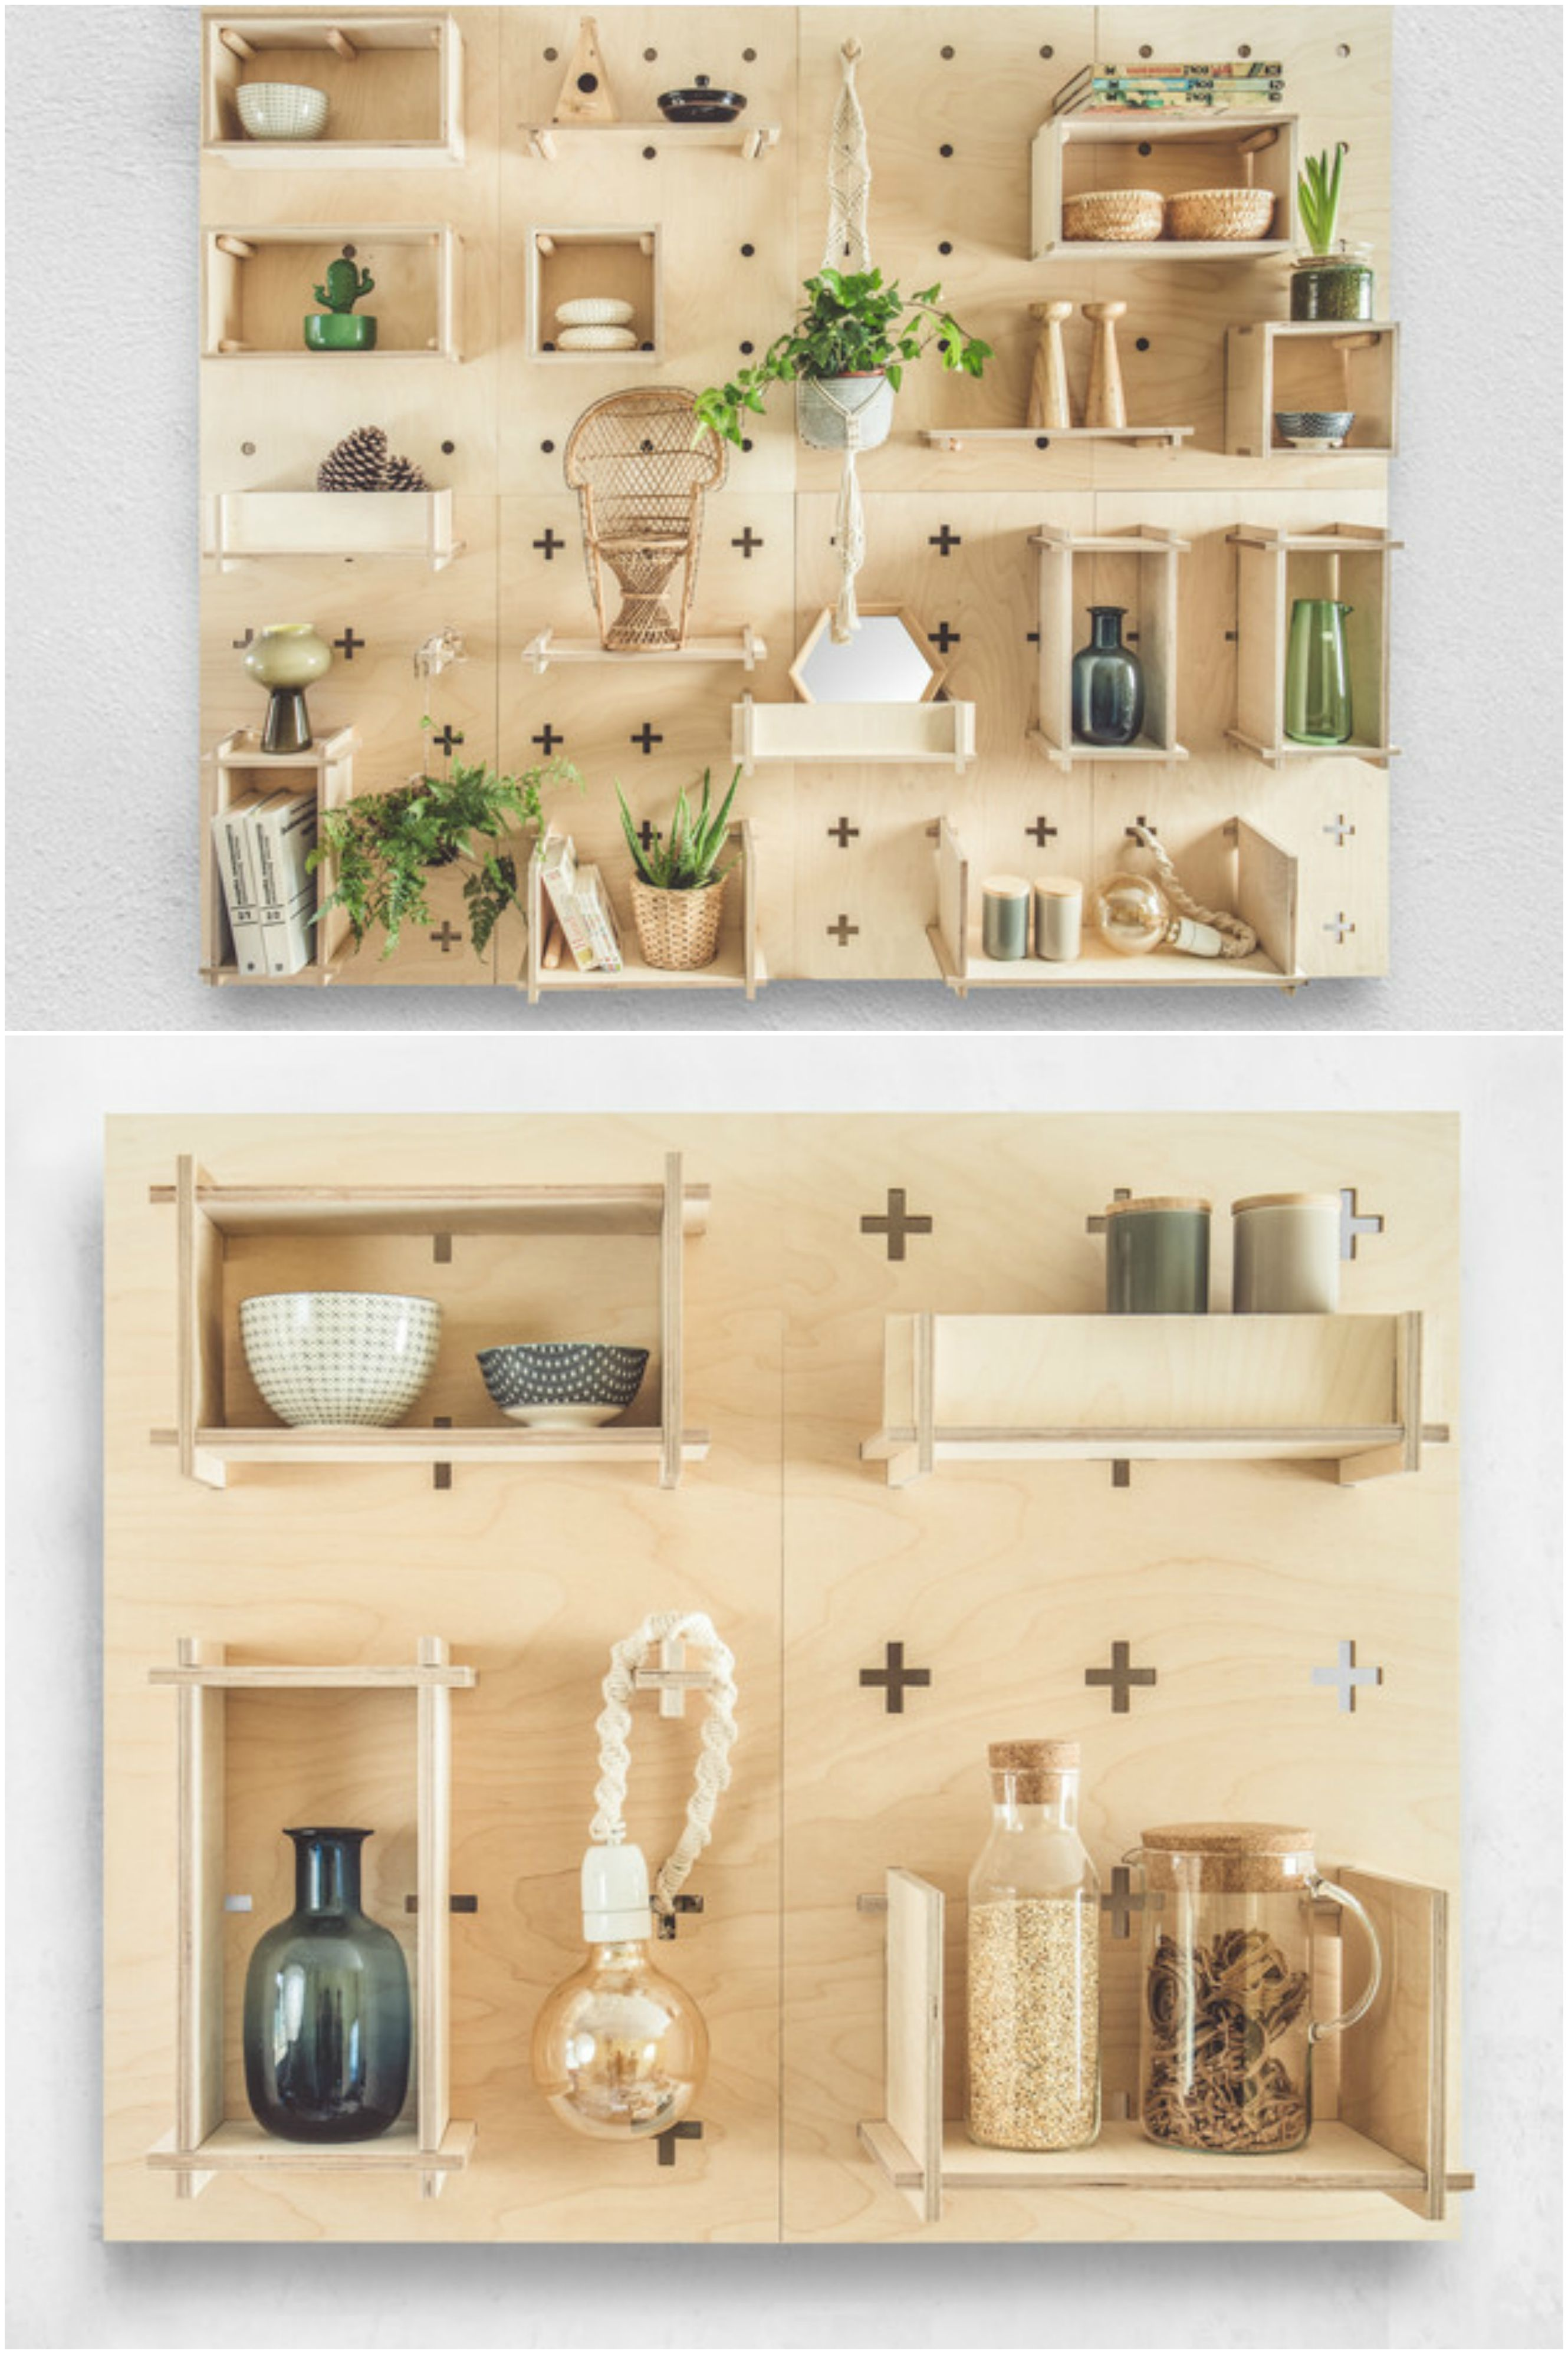 Pegboard Wall System With Functional Wall Panels And Durable Plywood Shelves Allows You To Organise Your Home Off Plywood Shelves Kitchen Design Diy Peg Board